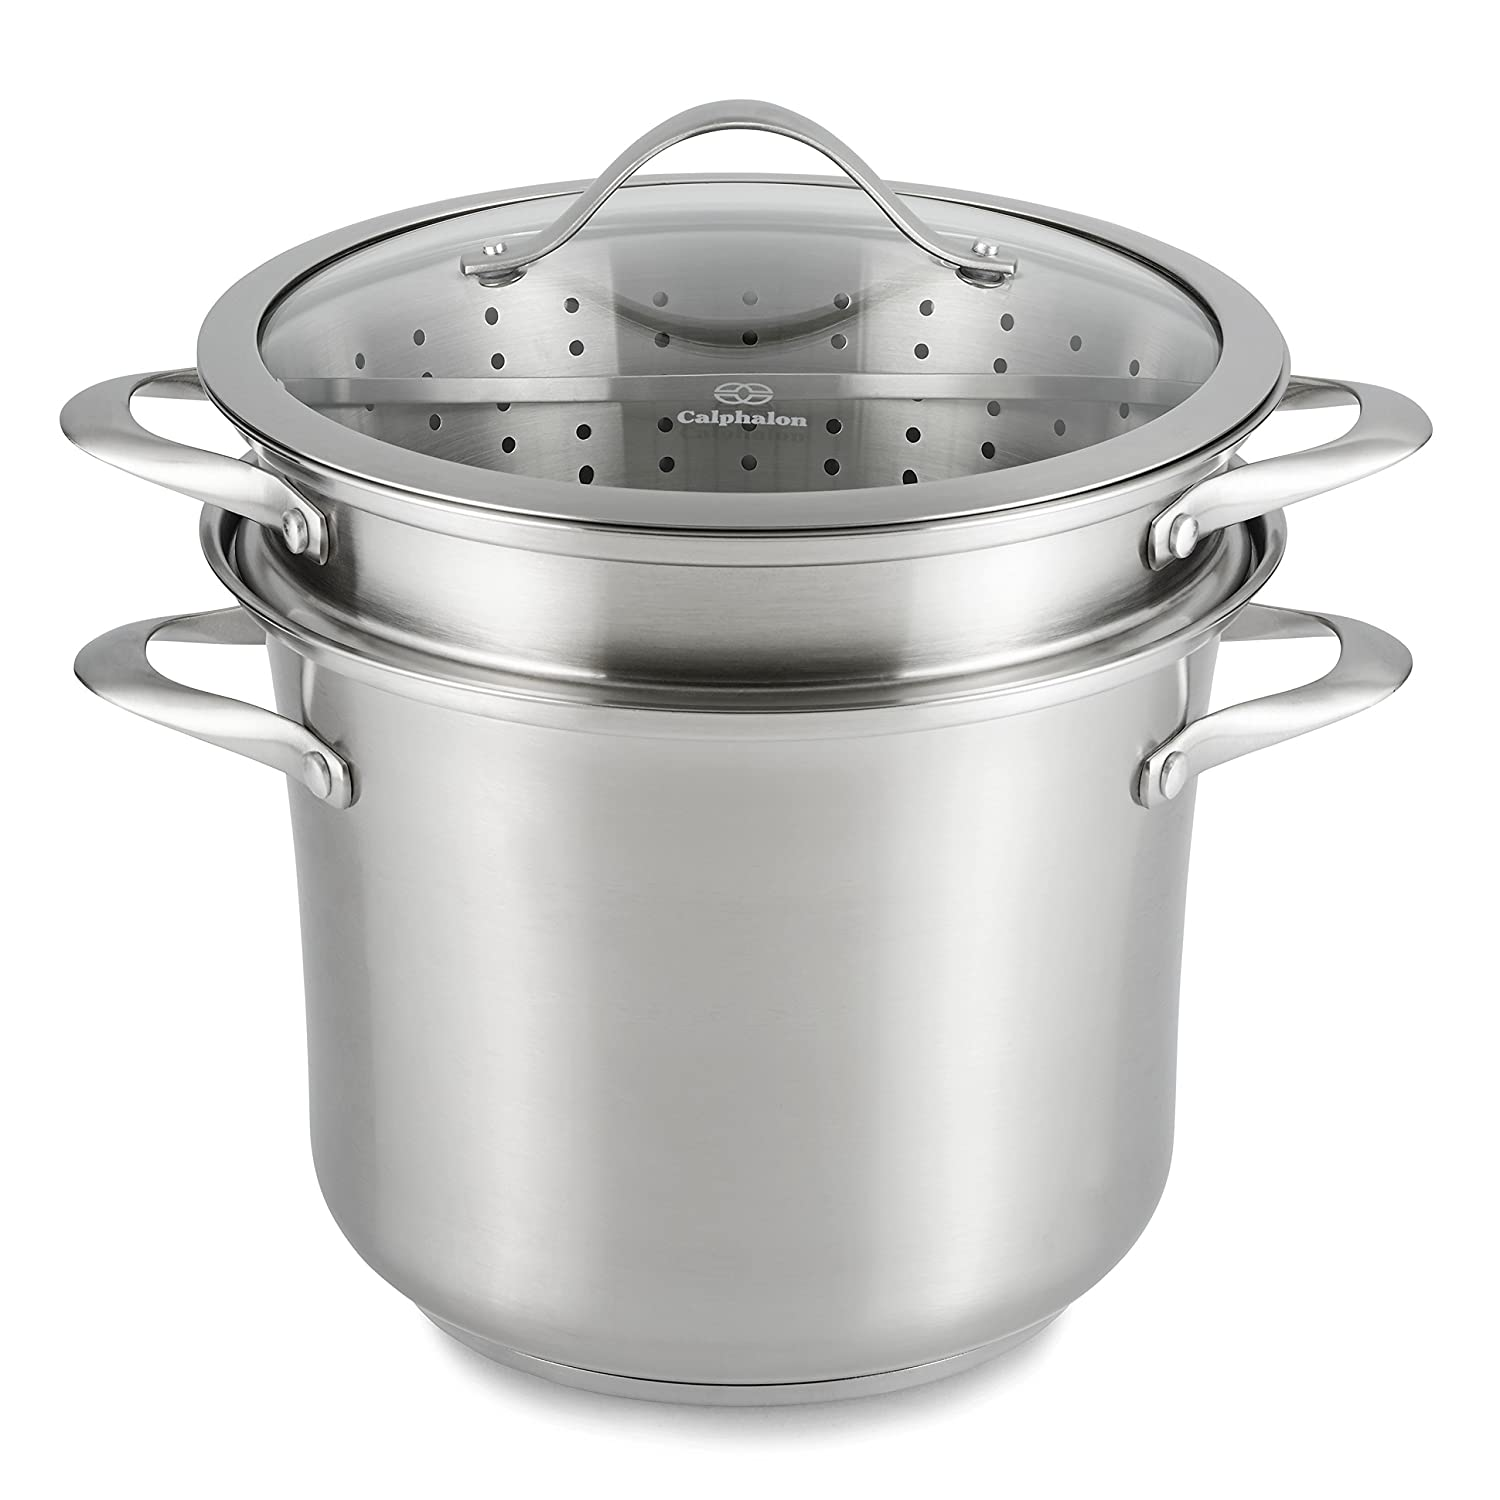 Amazon: Calphalon Contemporary Stainless 8quart Pot With Glass Lid And  2 Inserts: Multipots: Kitchen & Dining